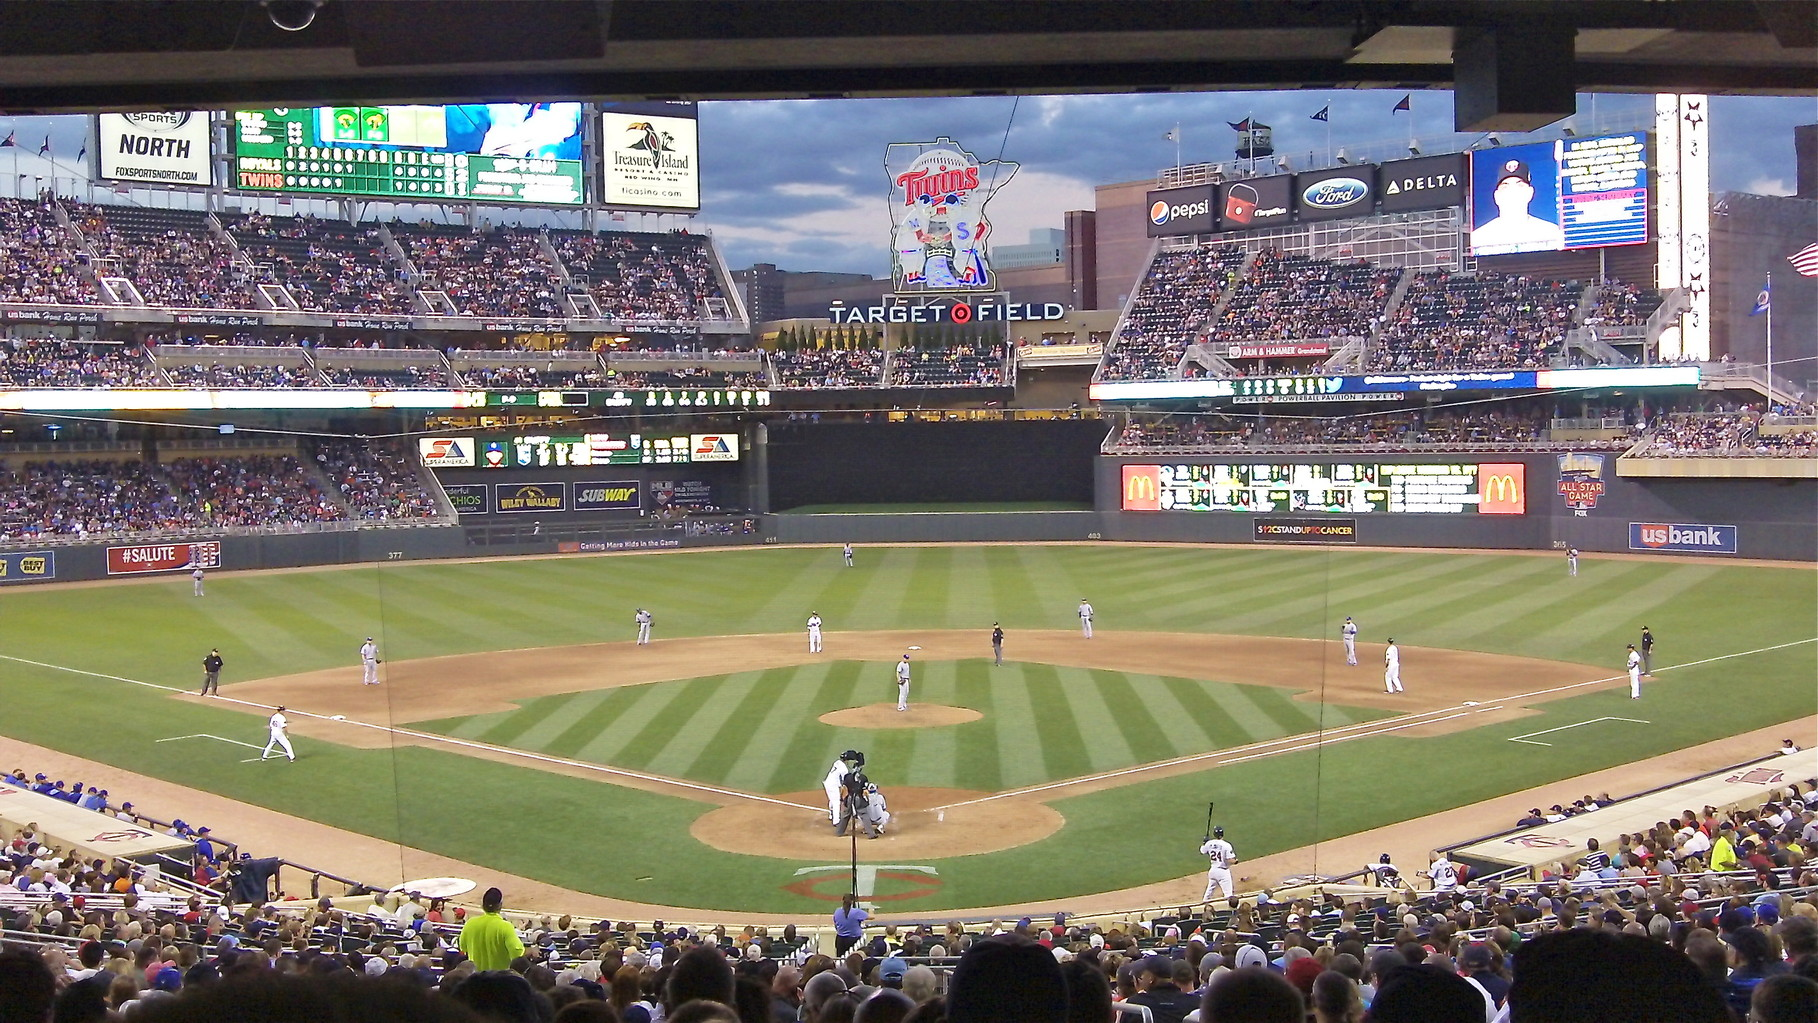 A perfect evening of baseball at the Target Stadium, ex. that the Twins lost the the KC Royals